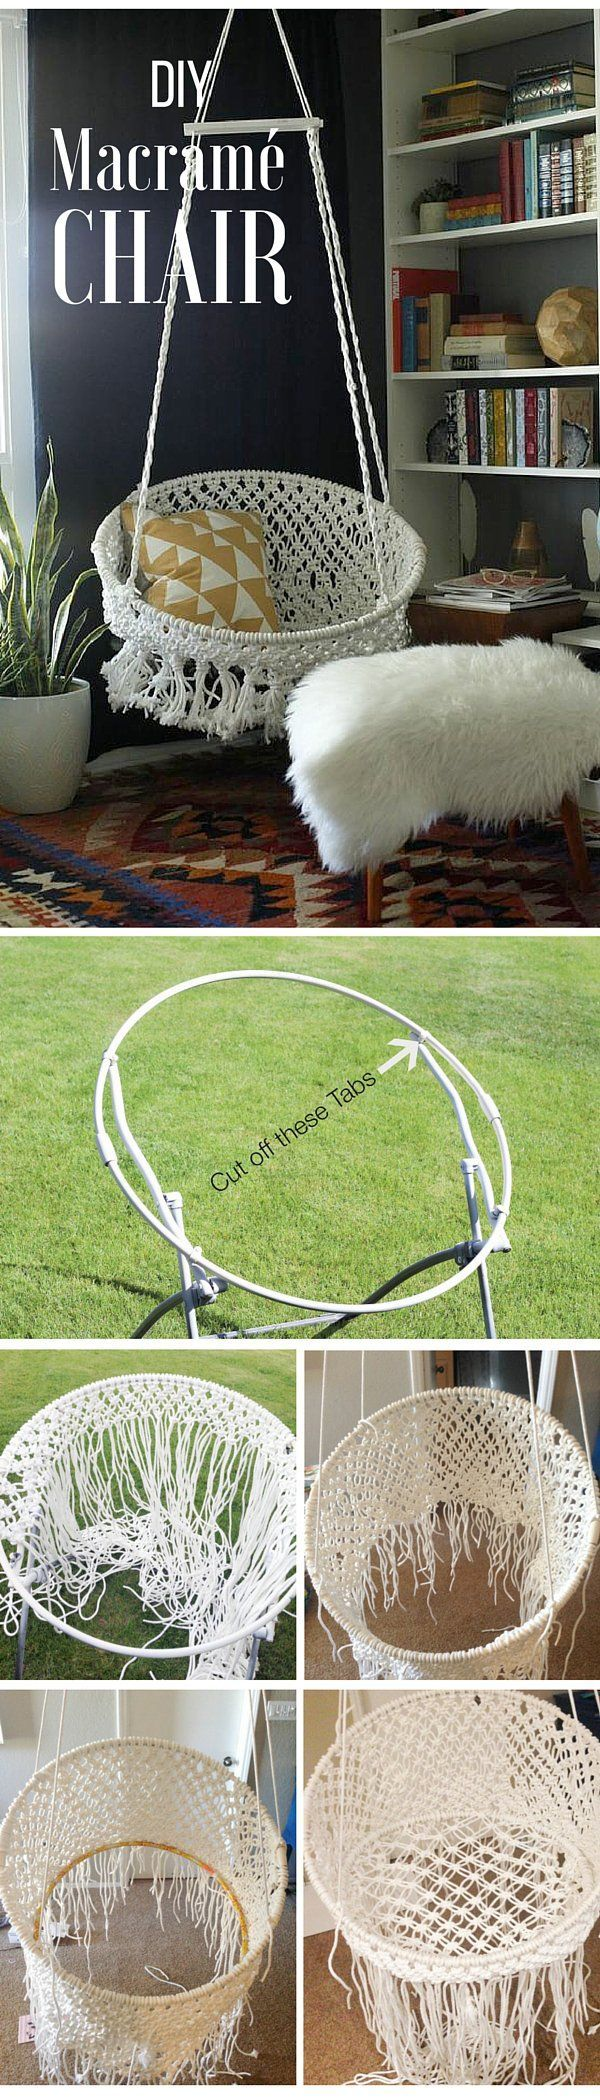 Check out the tutorial: #DIY Macrame Chair #crafts #decor